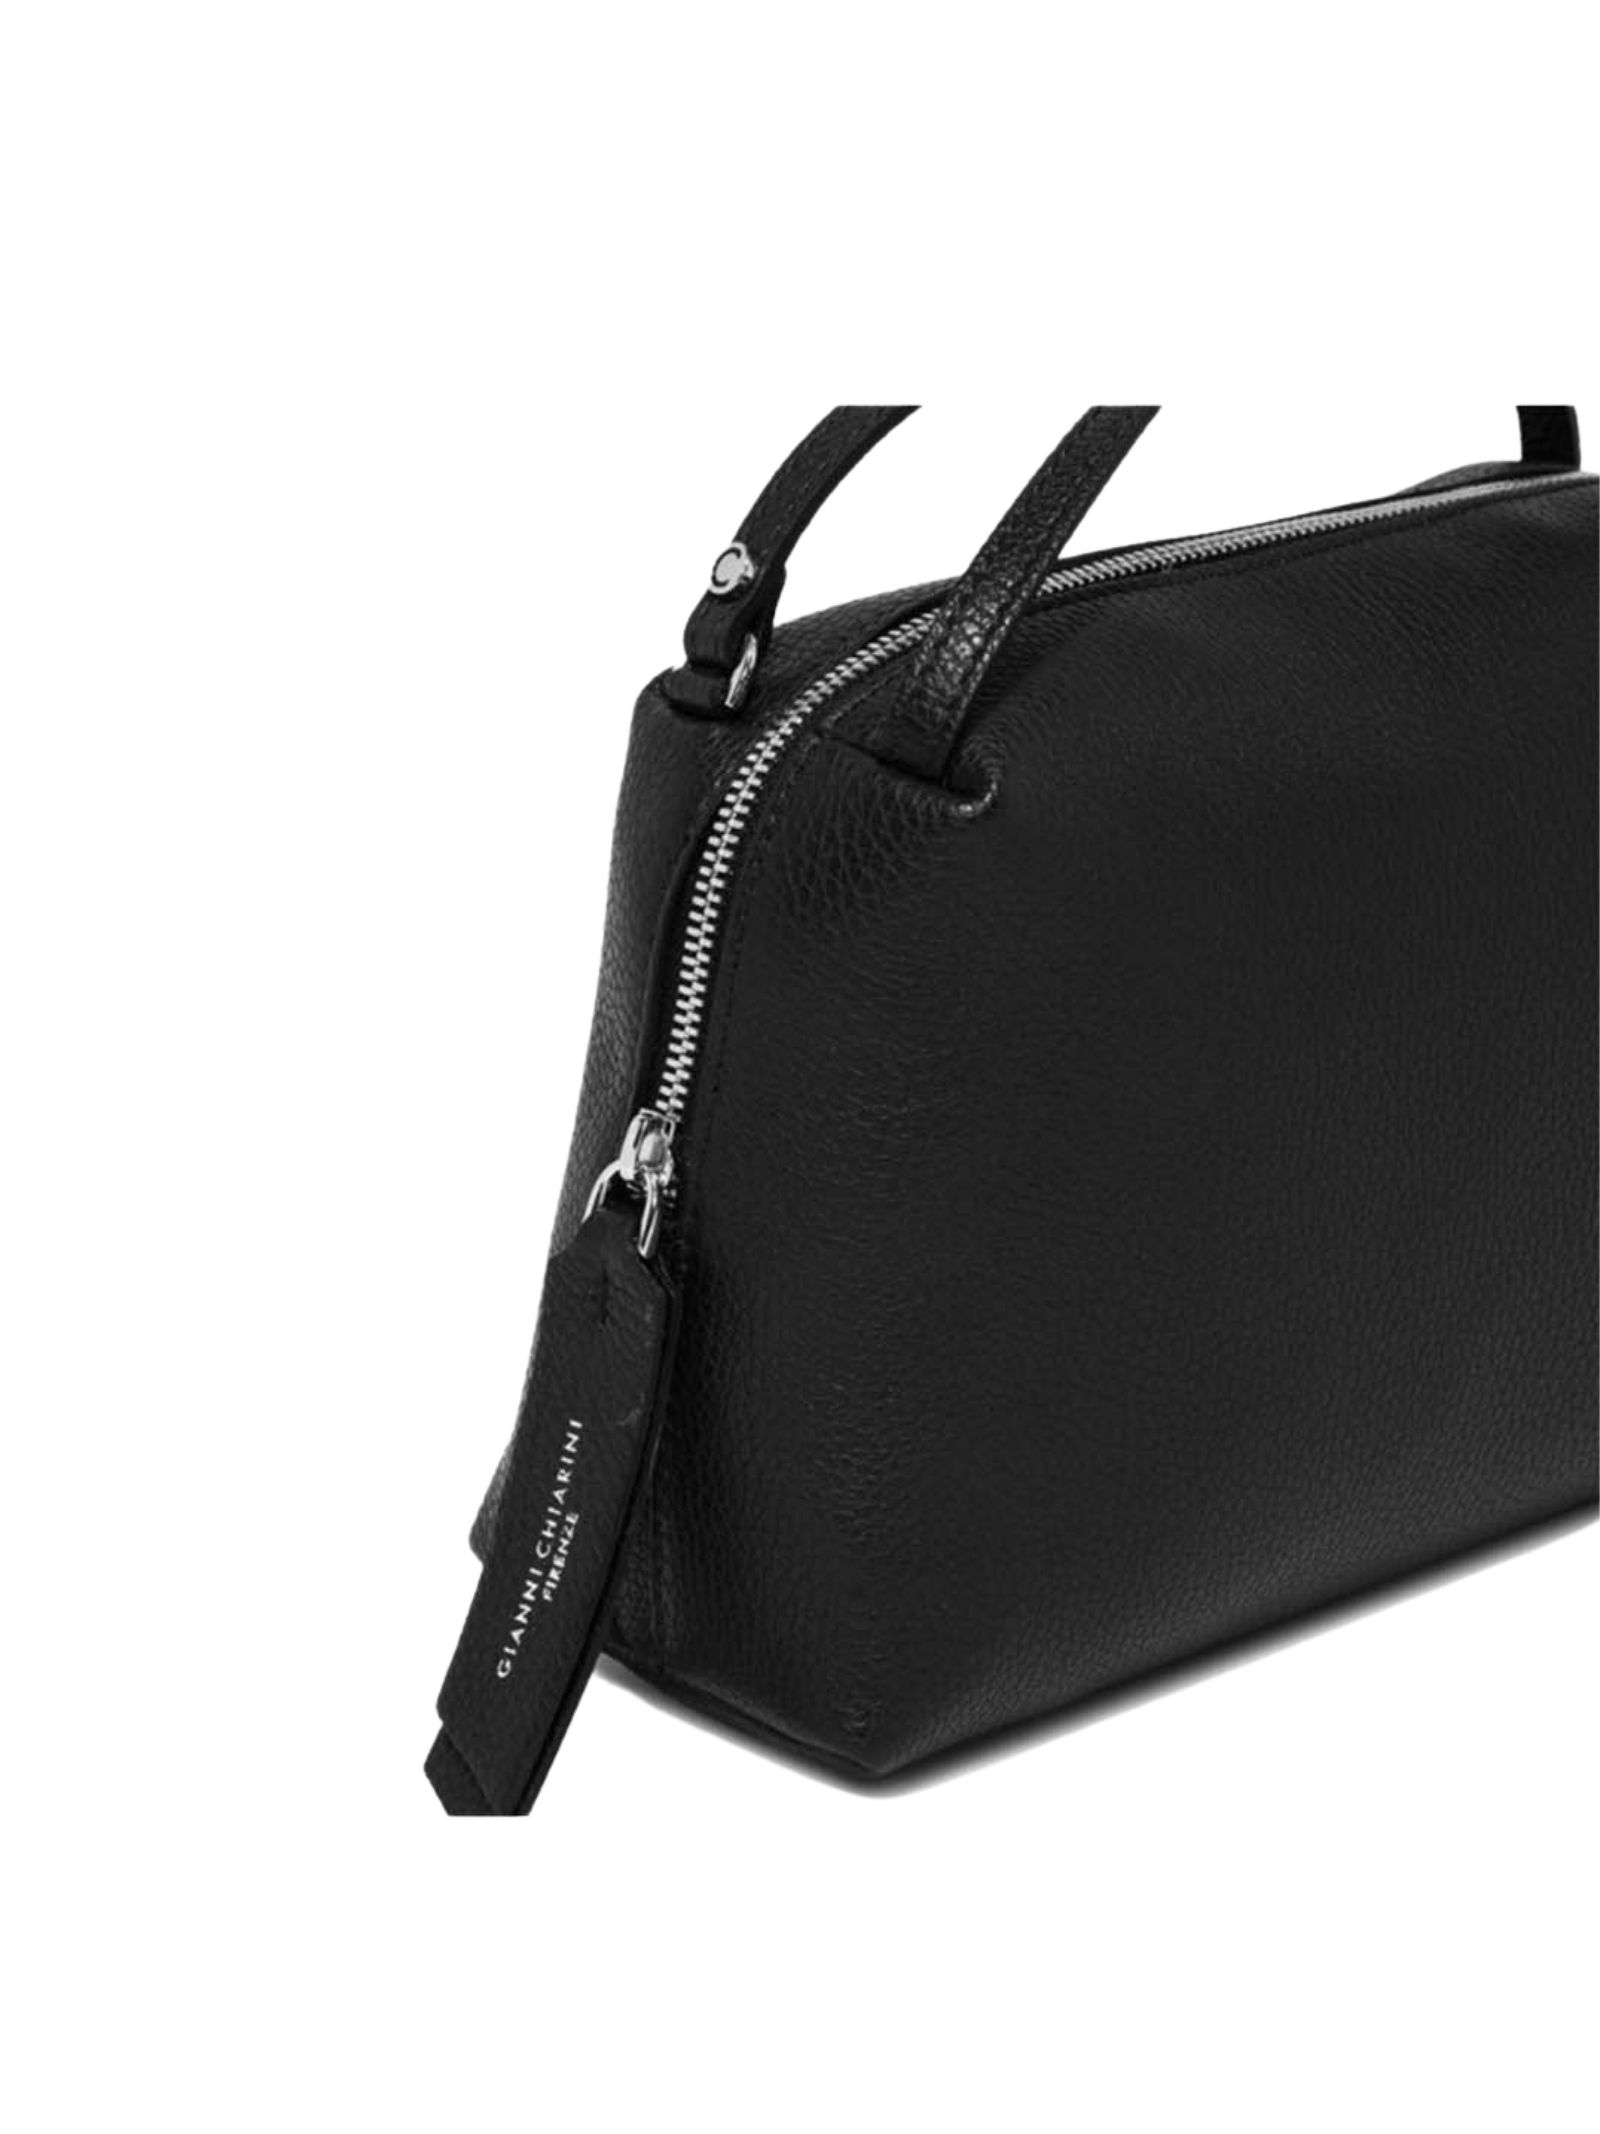 Alifa Woman's Bag in Black Leather with Double Hand Handle and Removable Shoulder Strap Gianni Chiarini   Bags and backpacks   BS8148001